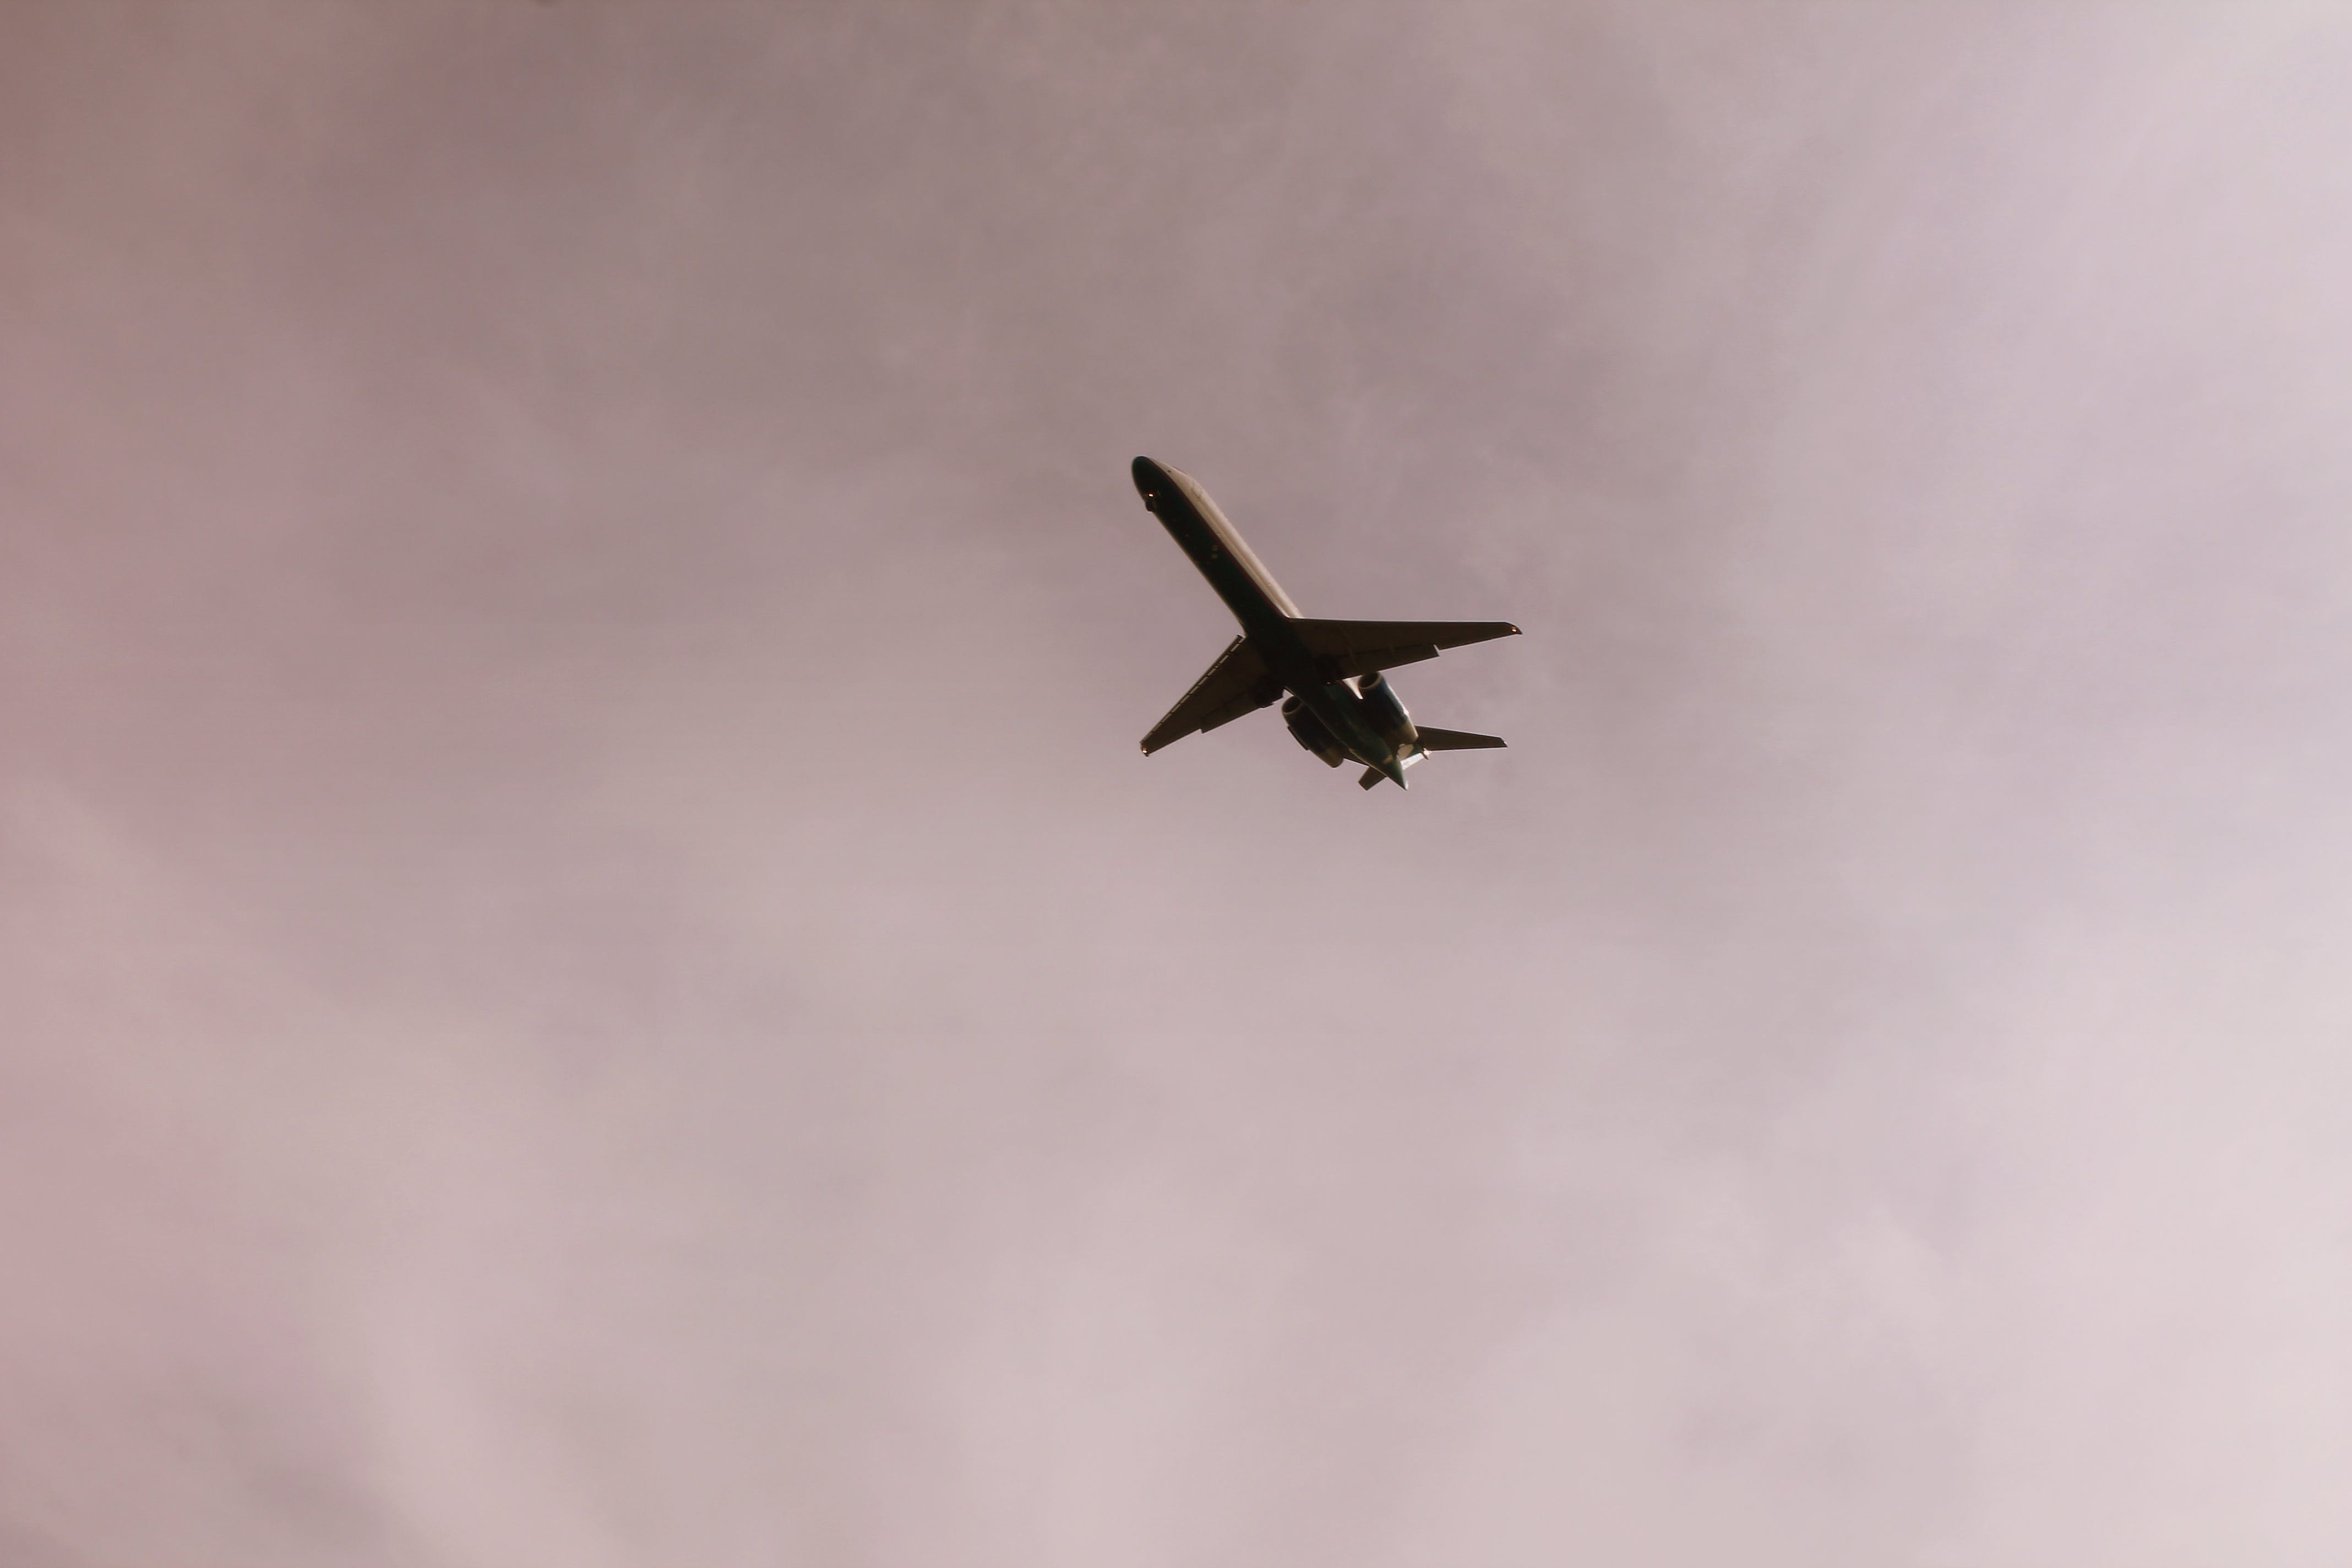 Airplane Flying in Mid Air Under Gray Clouds